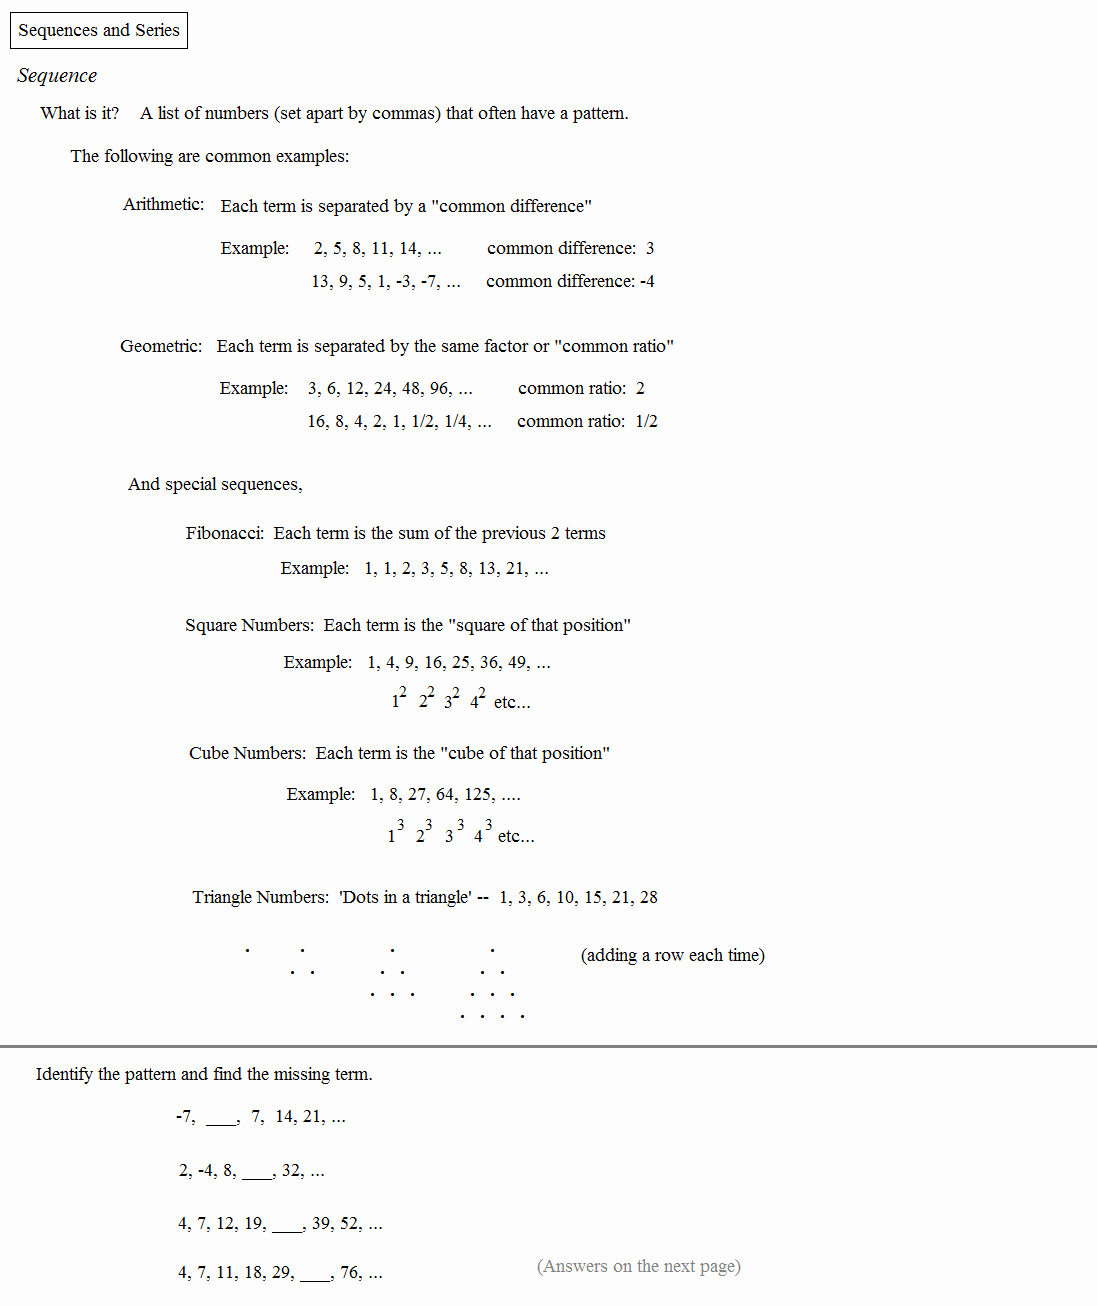 Sequences and Series Worksheet Answers Unique Math Plane Sequences and Series I